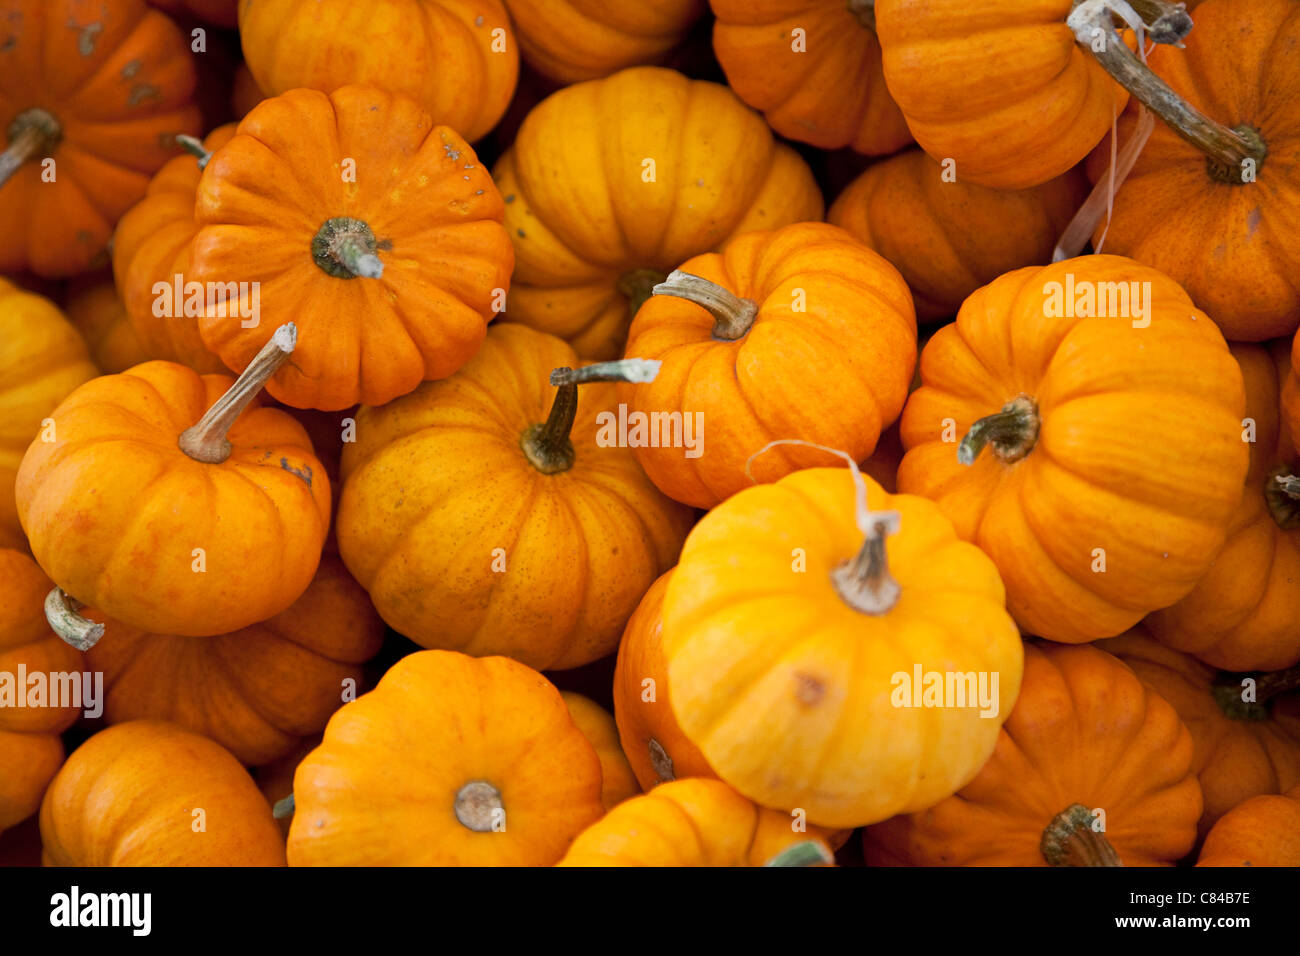 Small pumpkins ready for Halloween - Stock Image